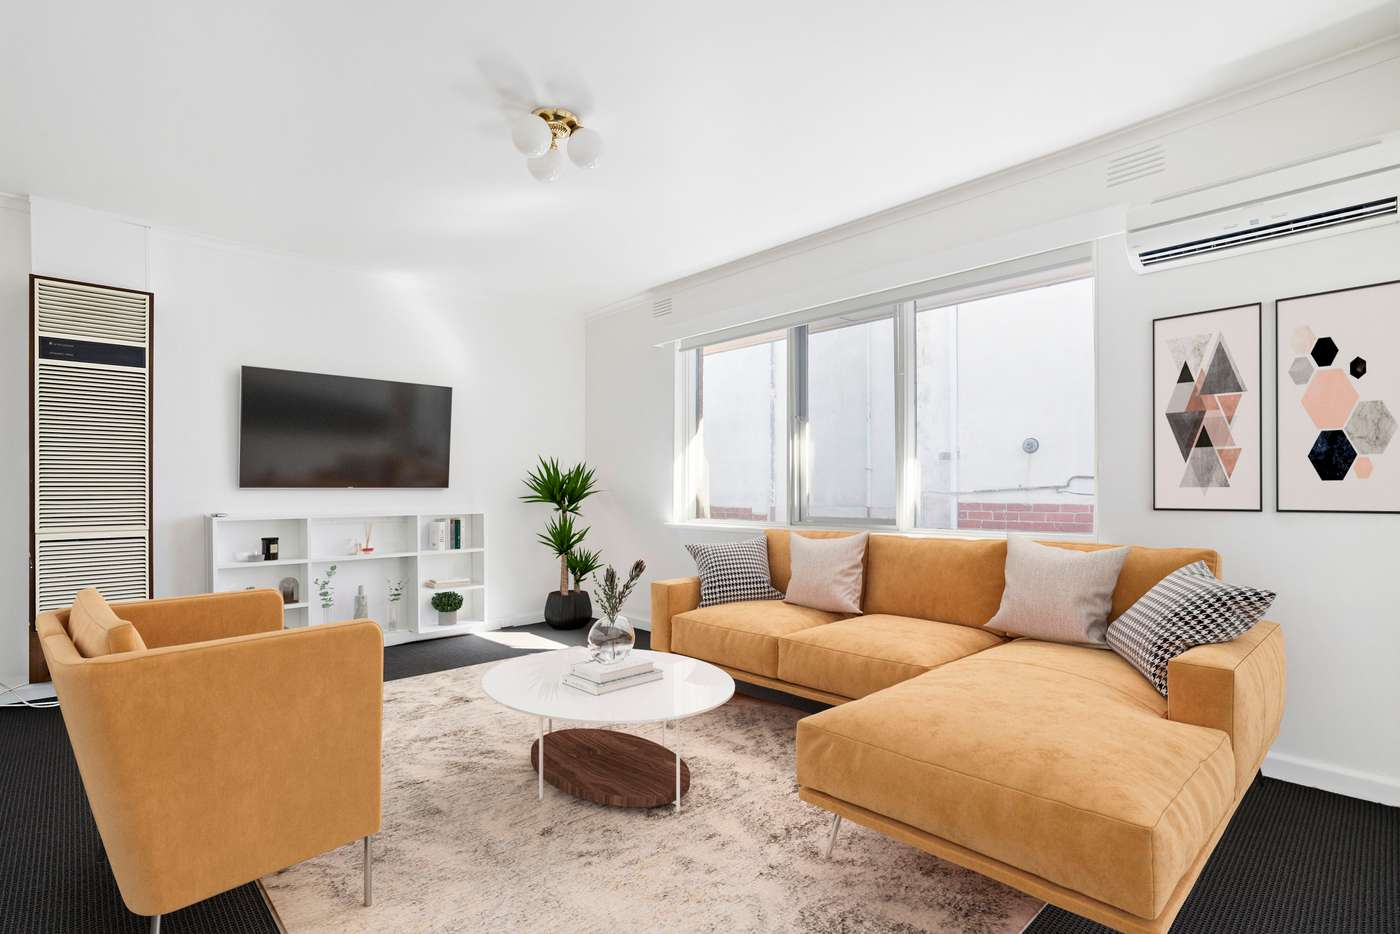 Main view of Homely apartment listing, 5/19 Herbert Street, St Kilda VIC 3182